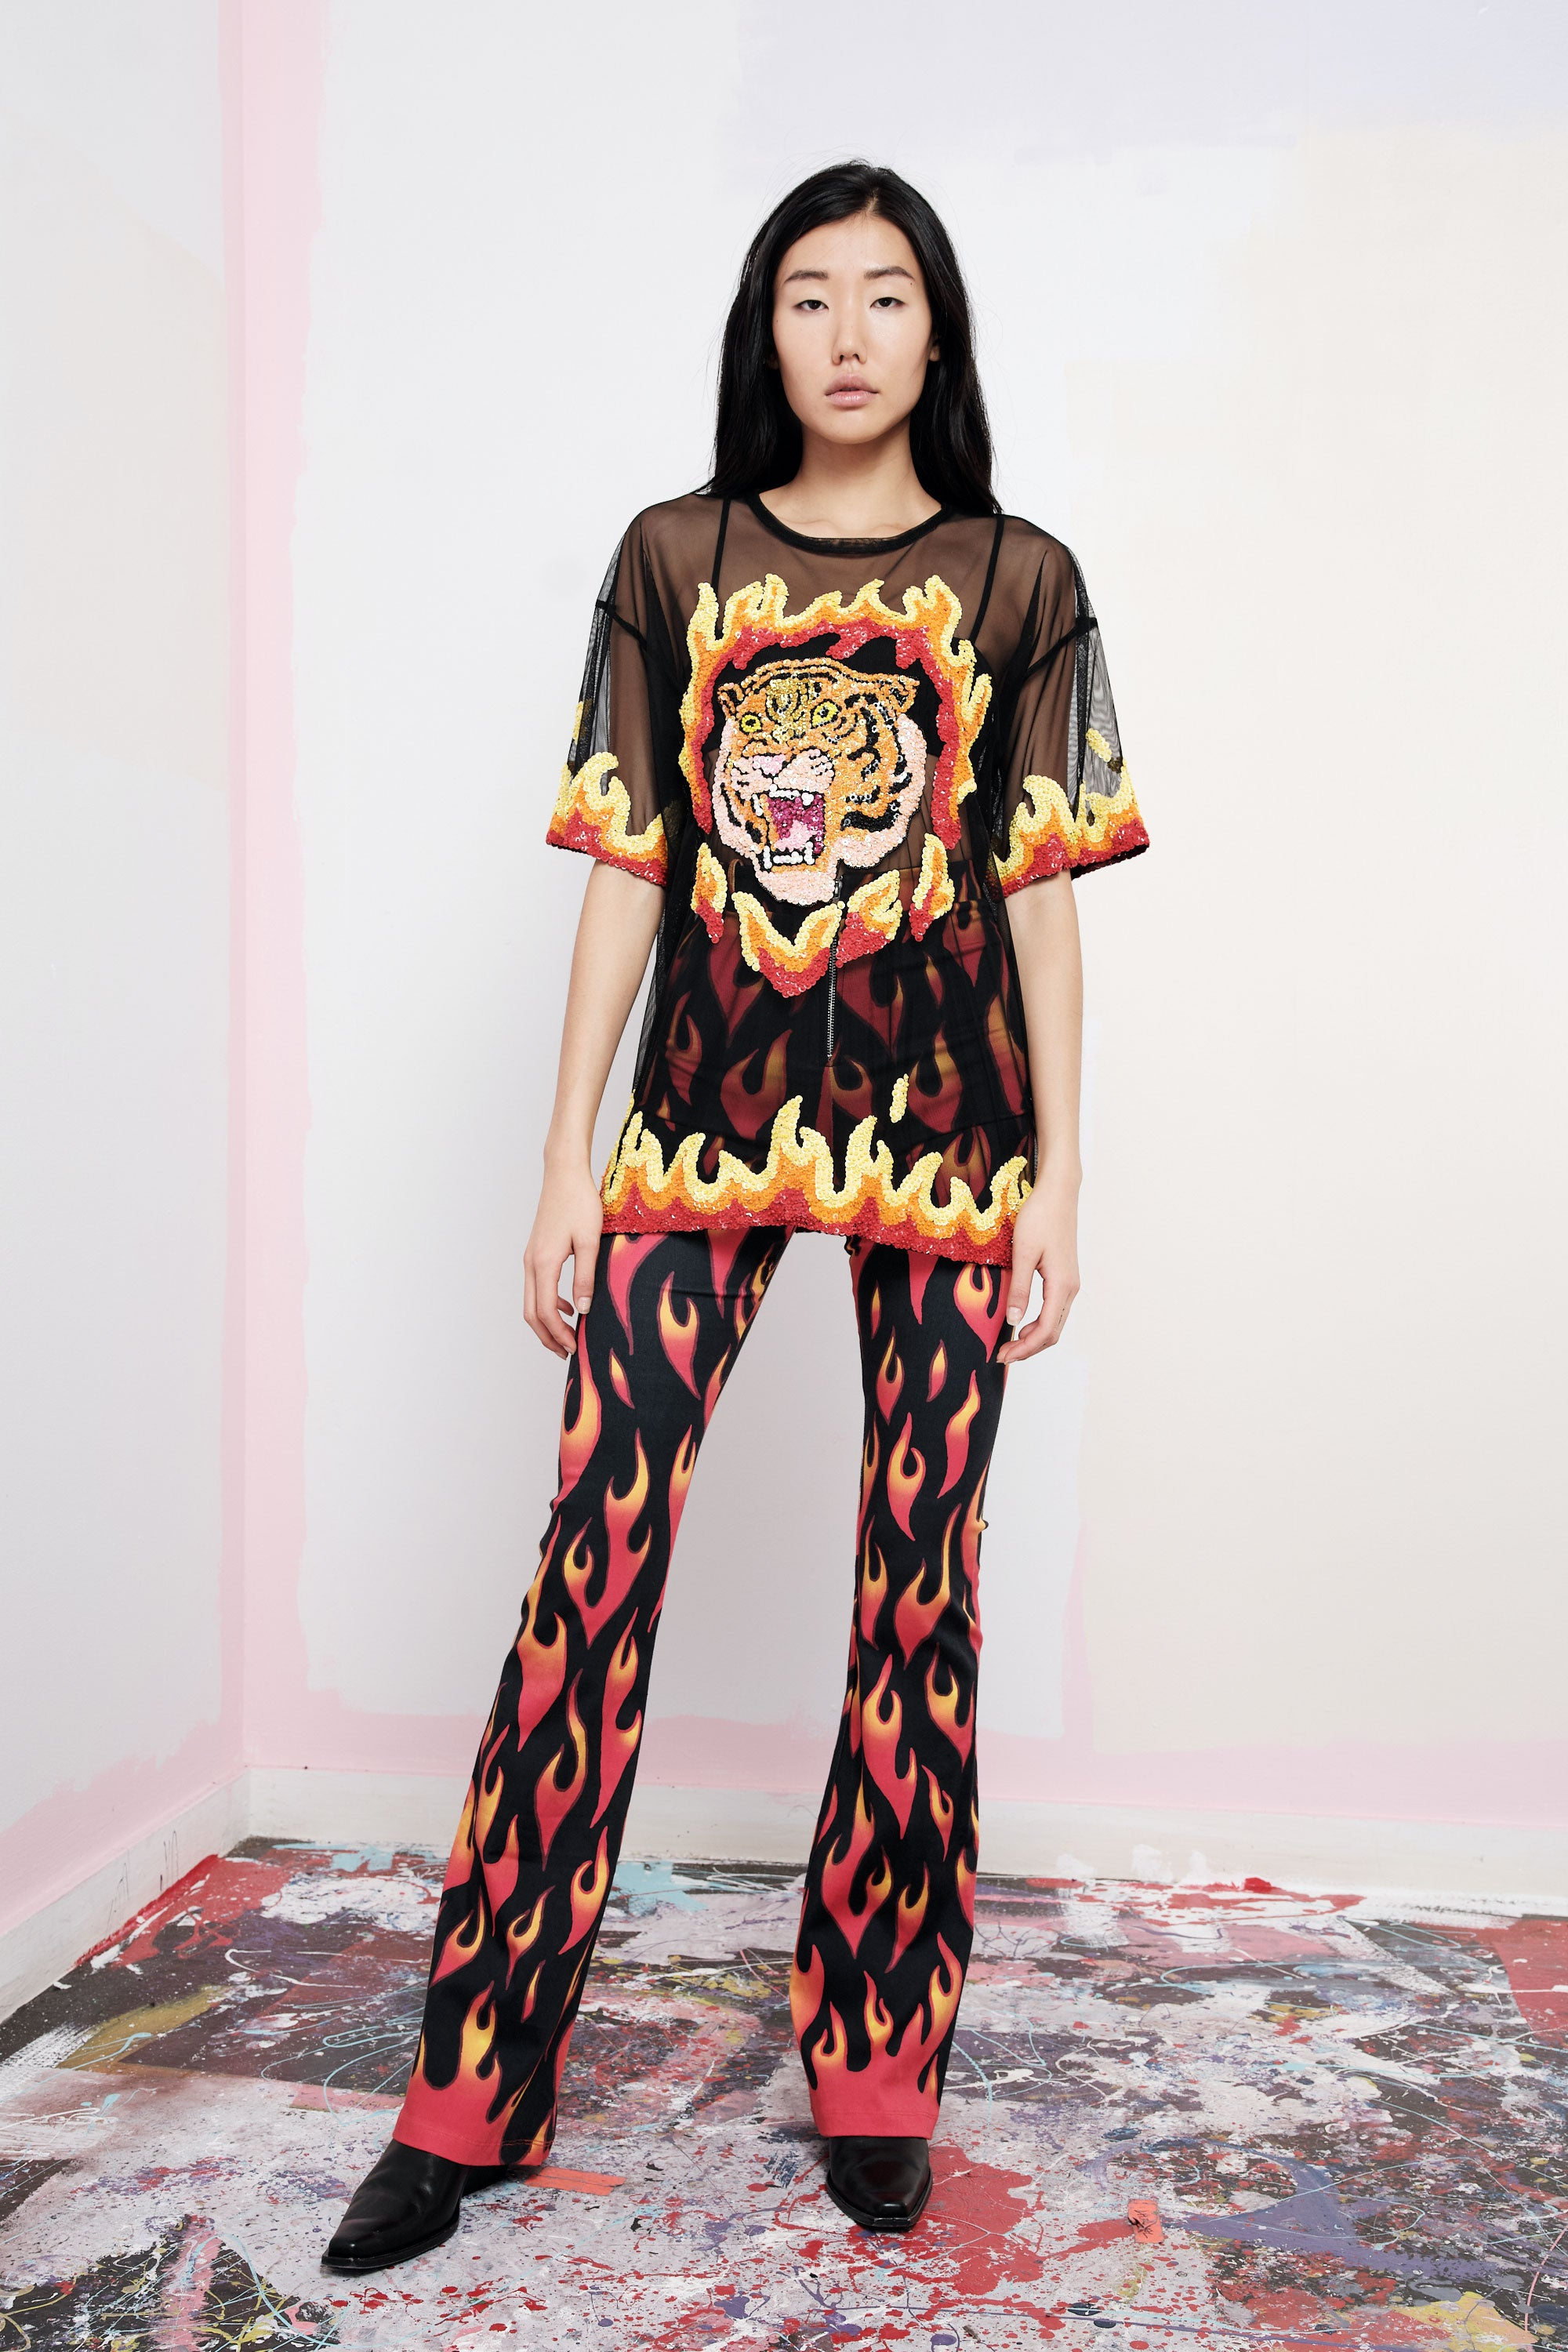 The Flaming Tiger Mesh Tee